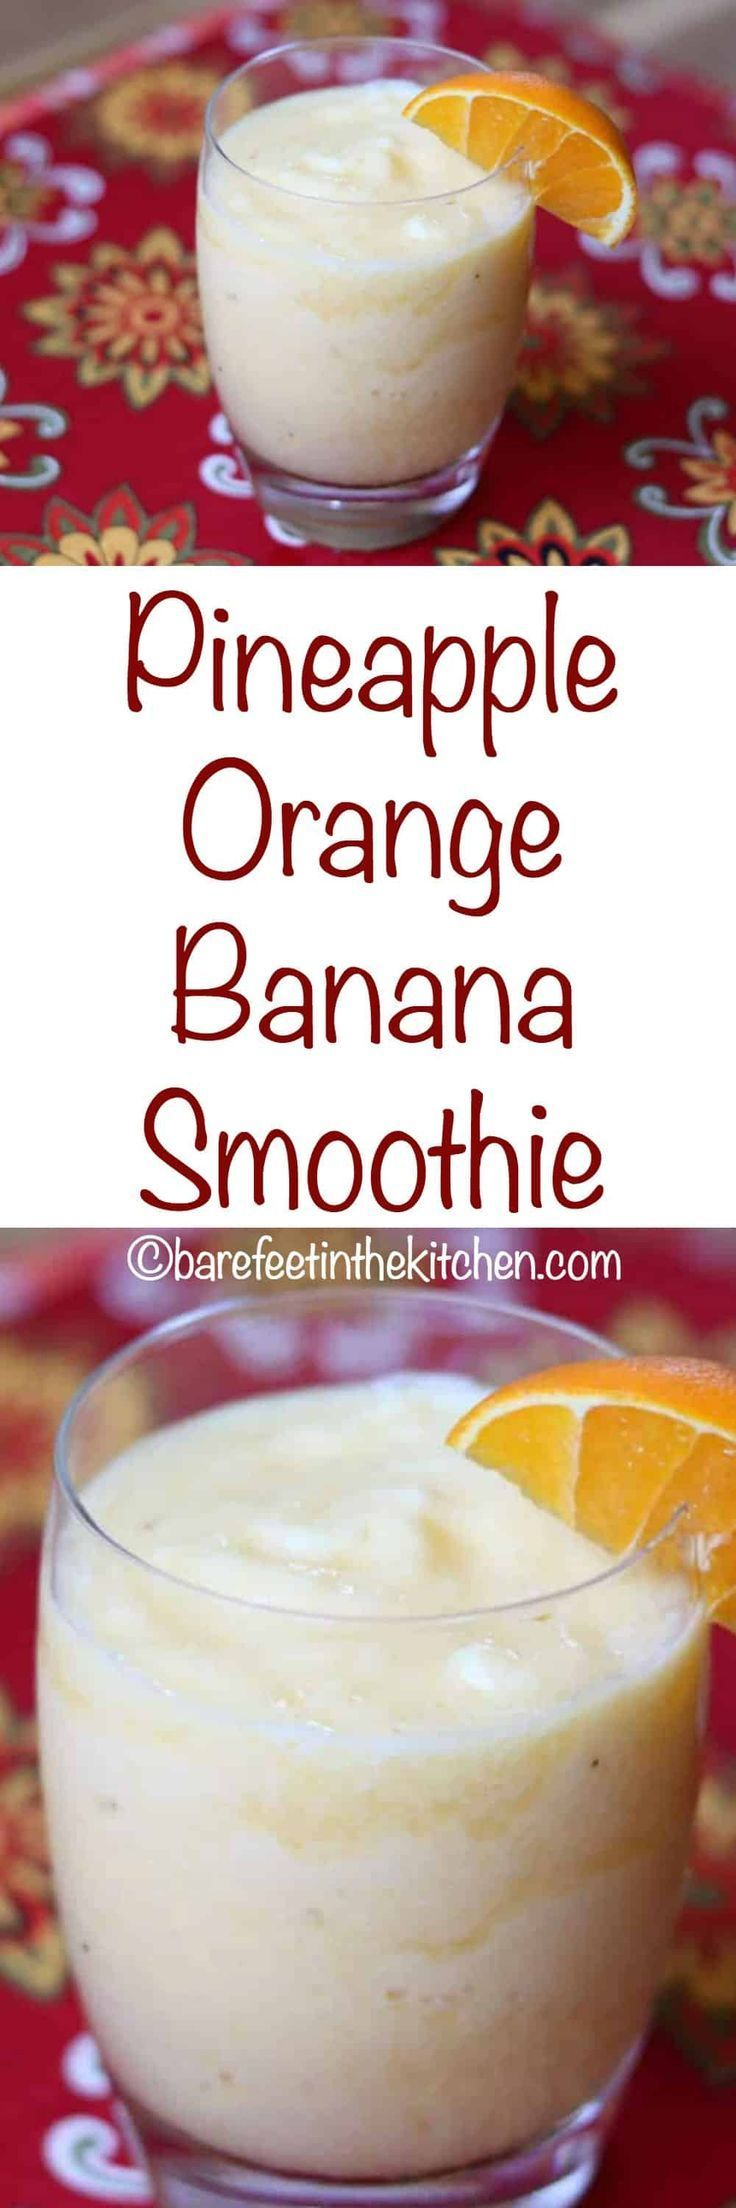 Pineapple Orange Banana Smoothie is a kid and adult favorite! get the recipe at barefeetinthekitchen.com